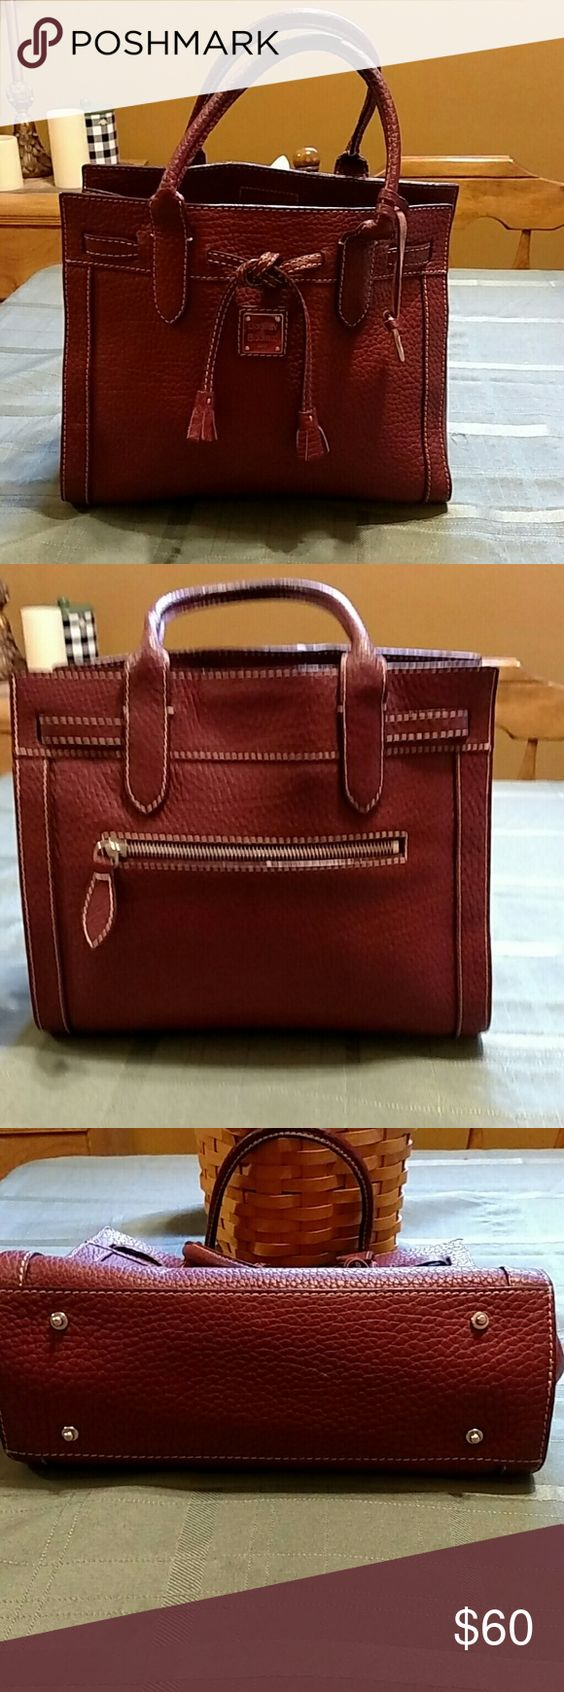 Authentic Dooney and Bourke tassel tote Gorgeous pebble grain leather in a rich wine color. Gold hardware and hanging DB emblem. Zippered compartment and slot inside. Mint condition. Dooney & Bourke Bags Satchels